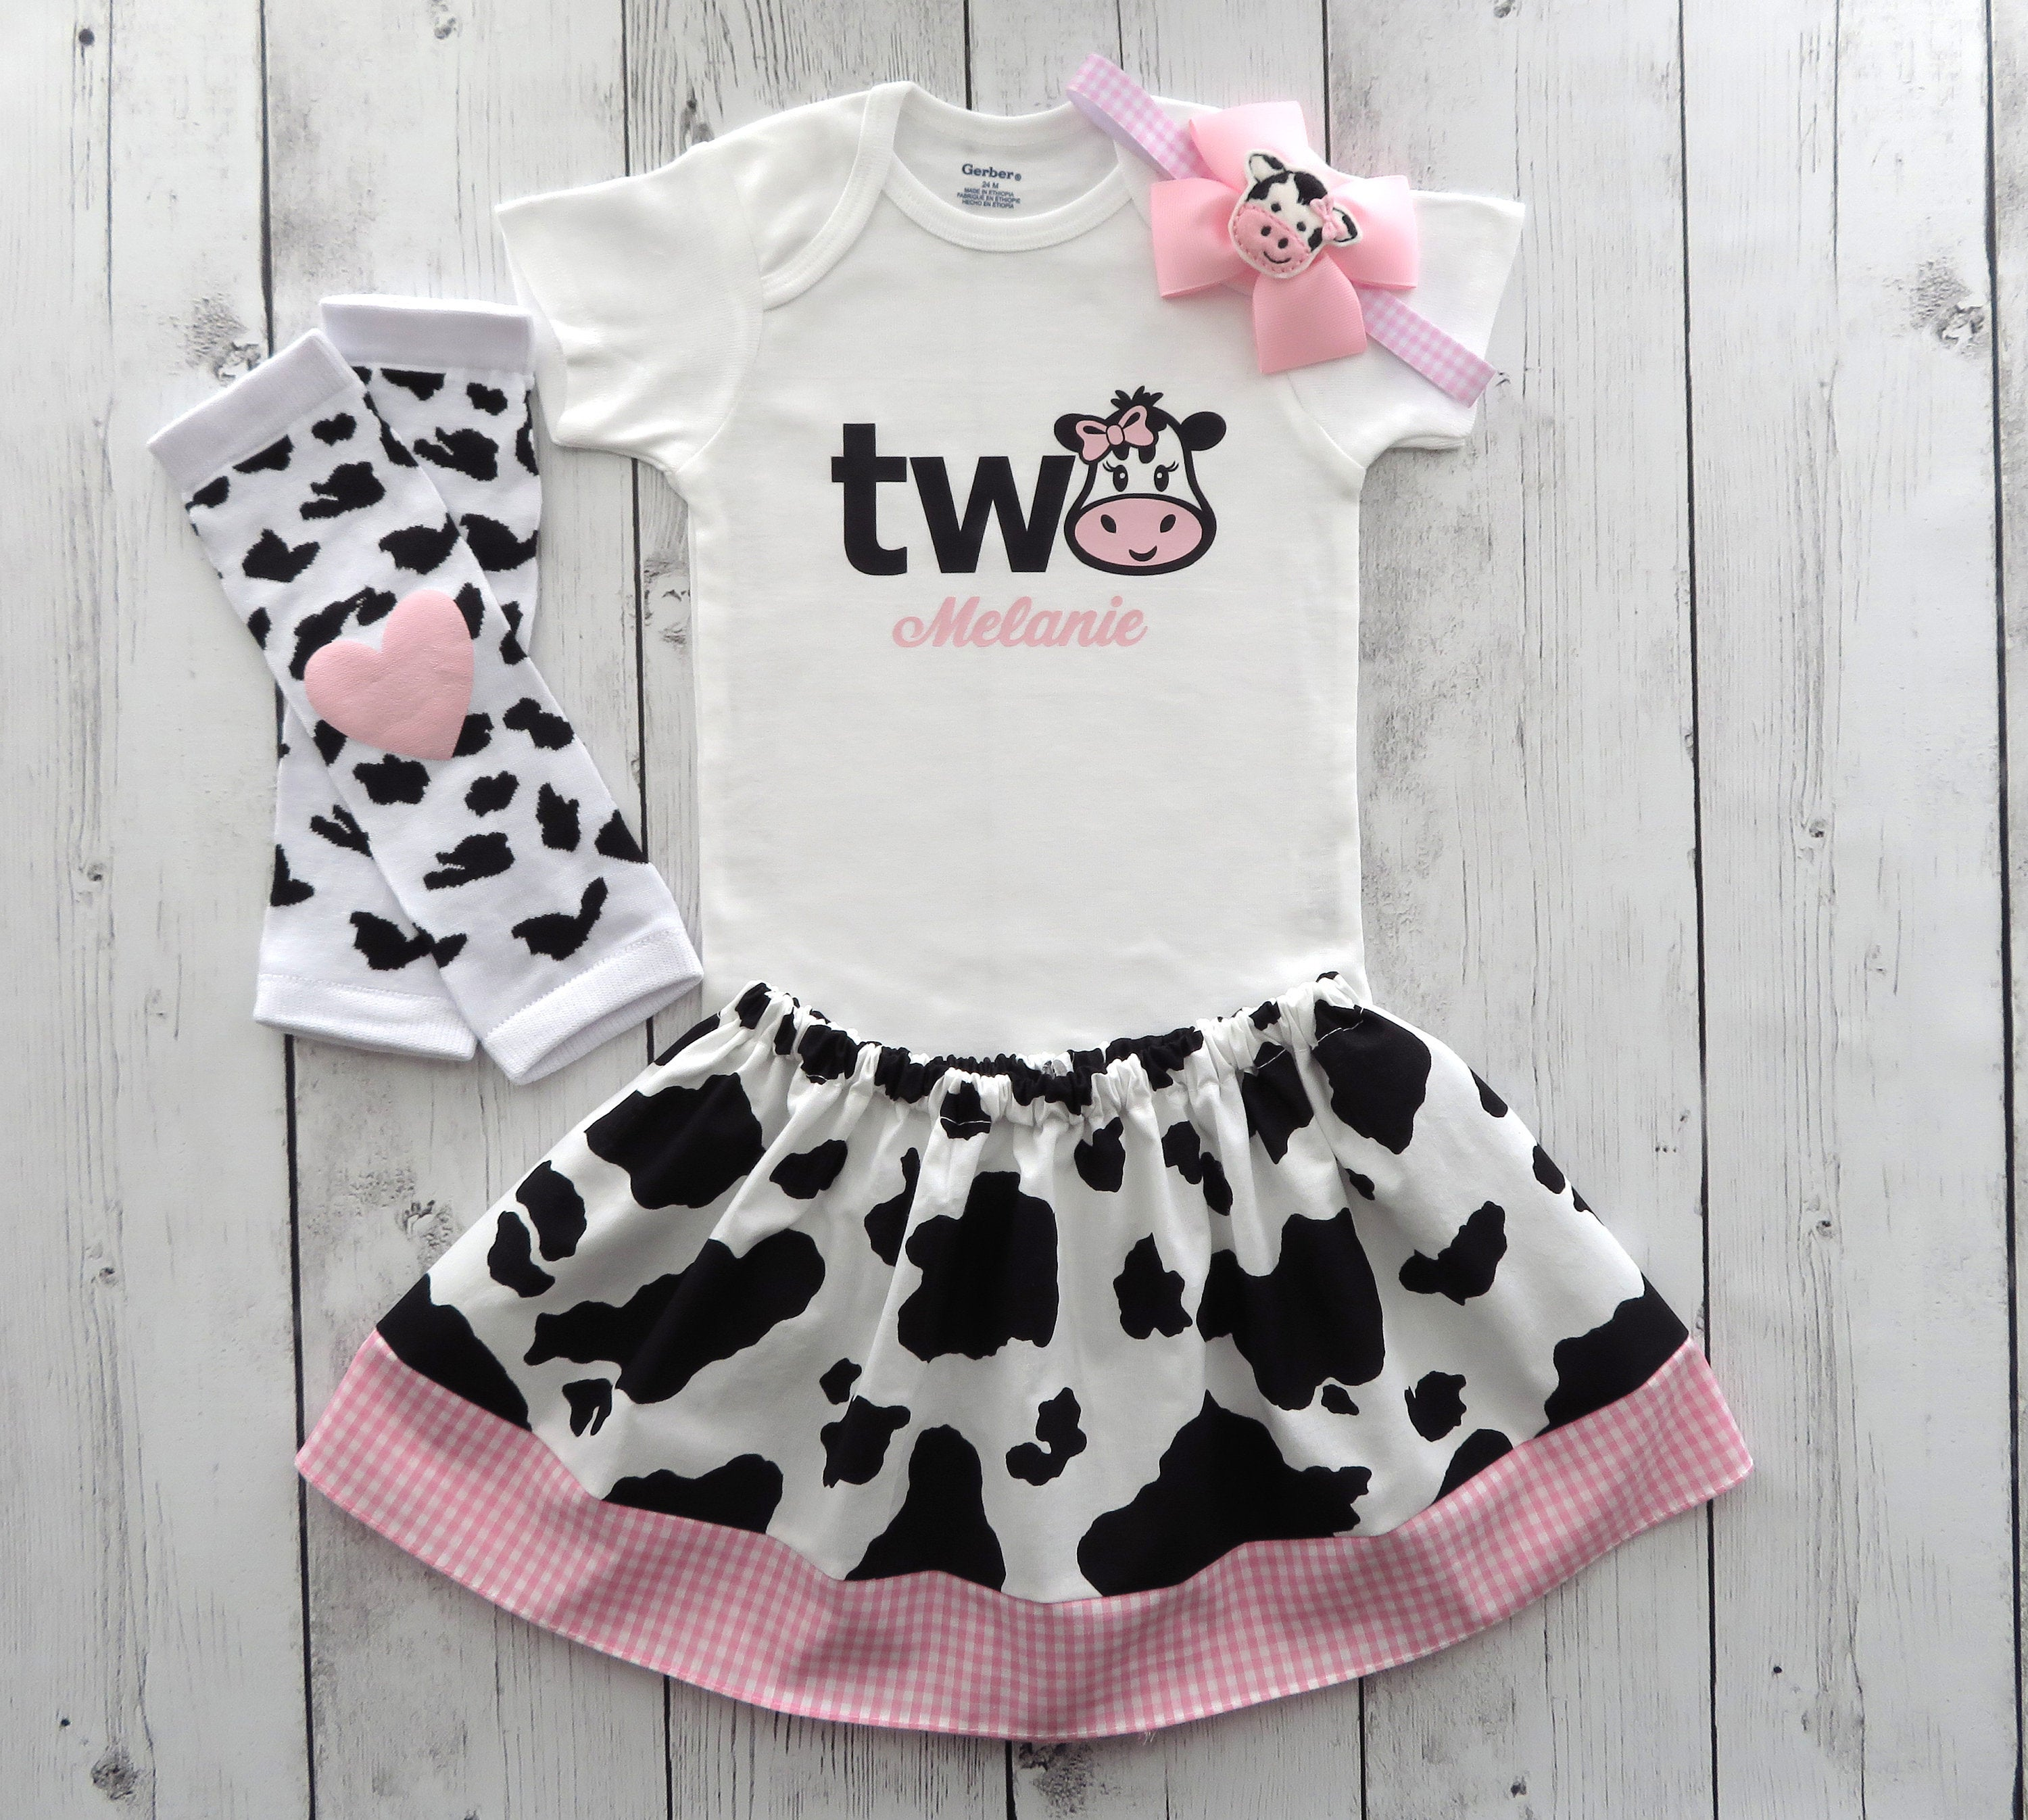 Cow Two Birthday Outfit in Cow print and Pink Gingham - onesie and skirt, girl birthday outfit, cowgirl, farm animal, personalized, barnyard